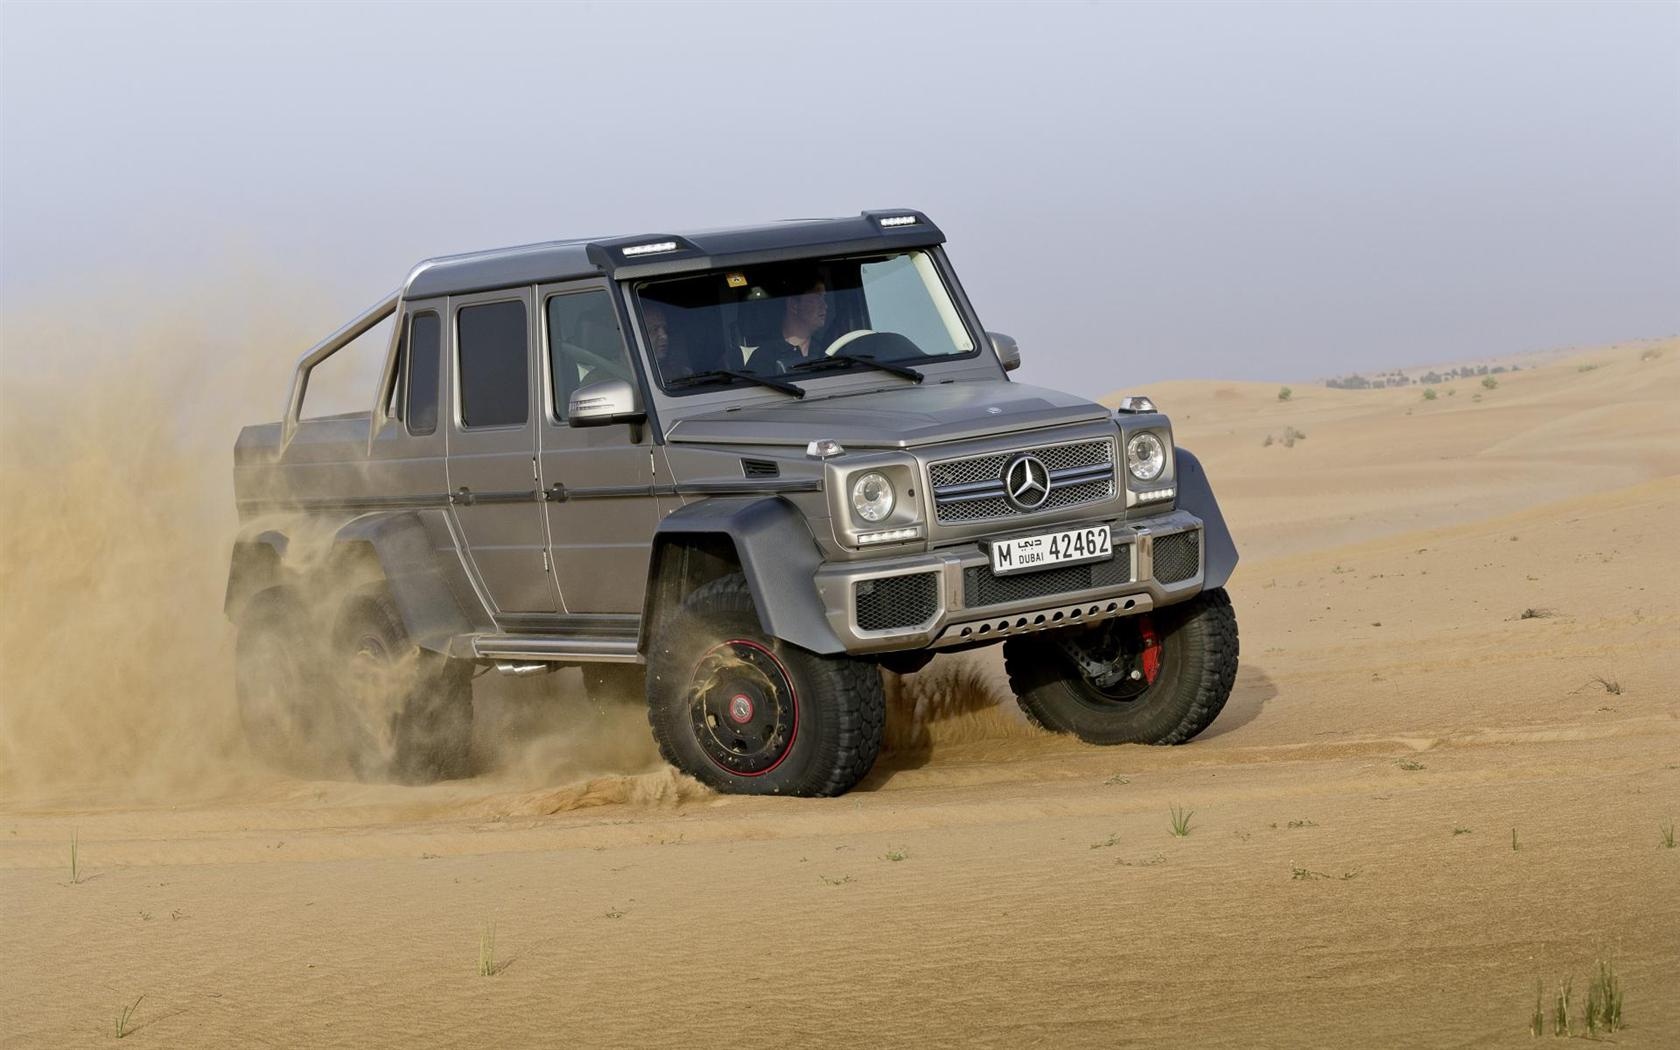 2013 mercedes benz g63 amg 6x6 concept images photo for Mercedes benz g63 amg 2013 price